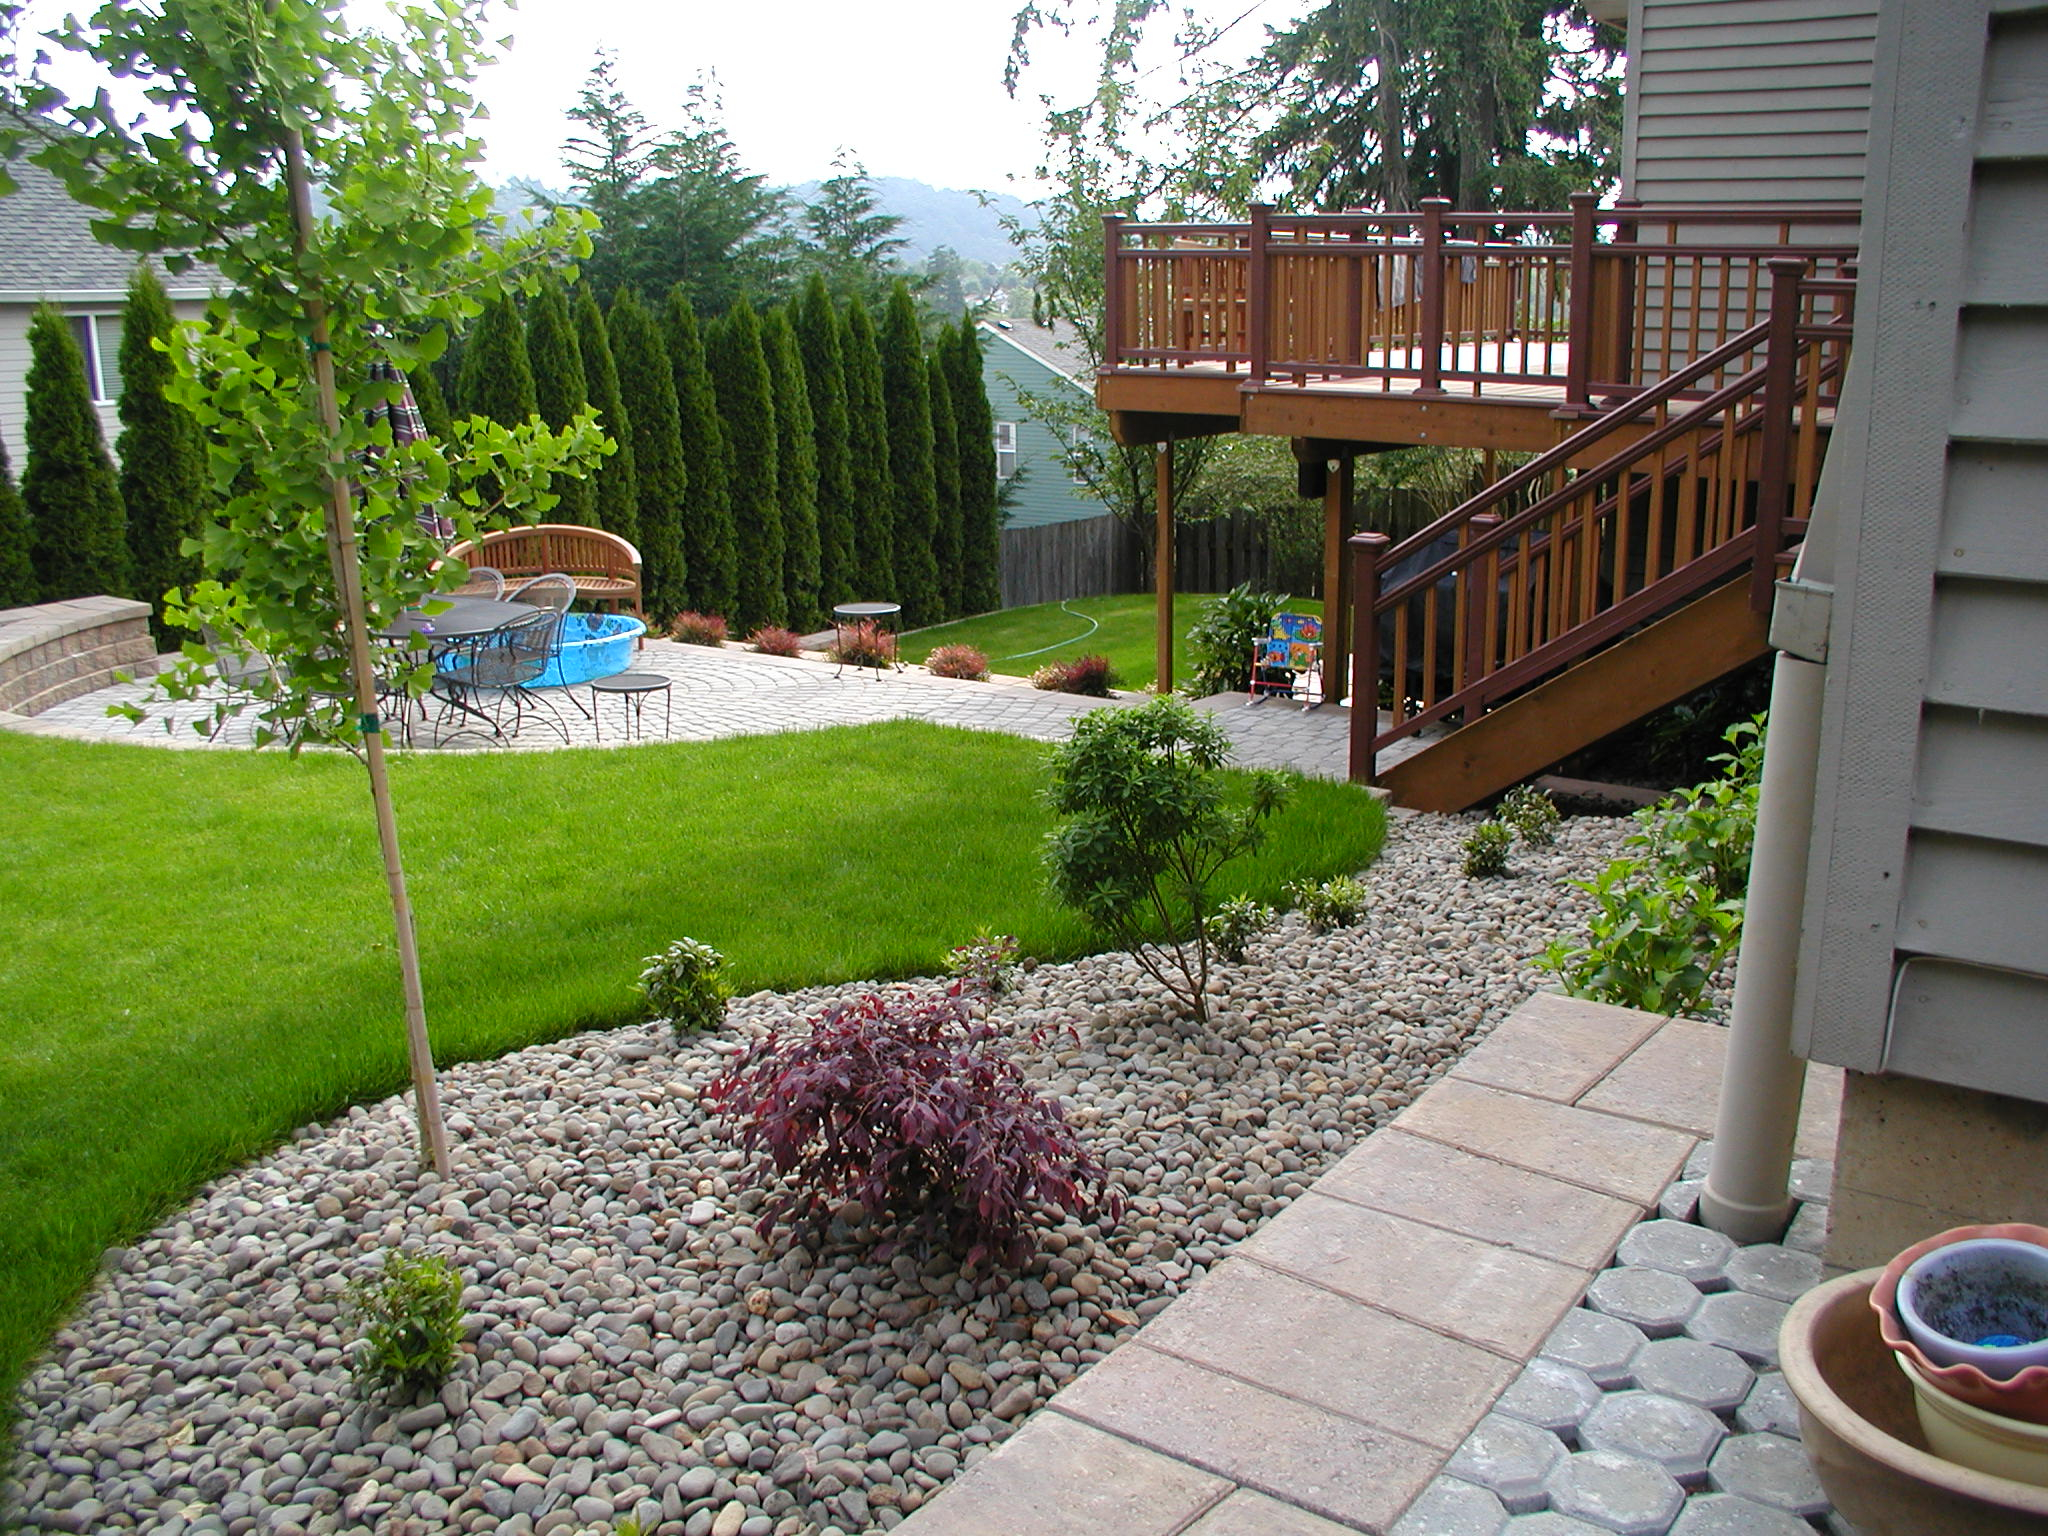 Backyard Ideas Outstanding Landscape Design Backyard Sard Info inside How To Design A Backyard Landscape